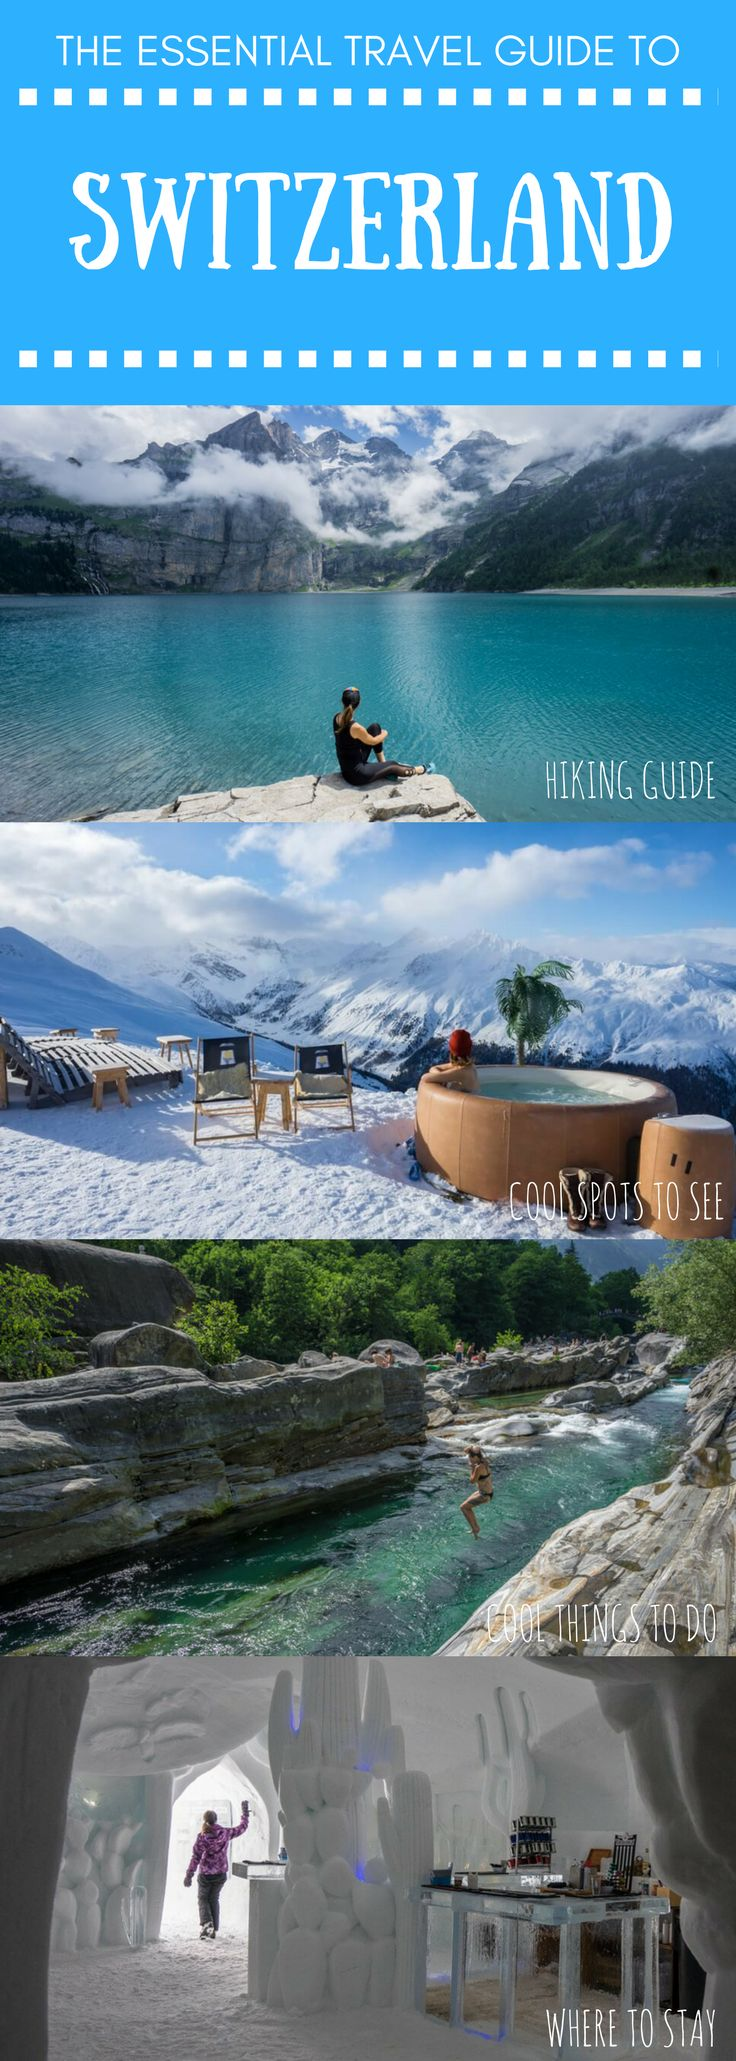 Everything you need to know about traveling in Switzerland, from hiking in Zermatt, to skiing in Davos, to chasing waterfalls at Oeschinen Lake, plus tips on where to stay, how to get around, and what to eat | Be My Travel Muse #switzerlandguide #switzerland